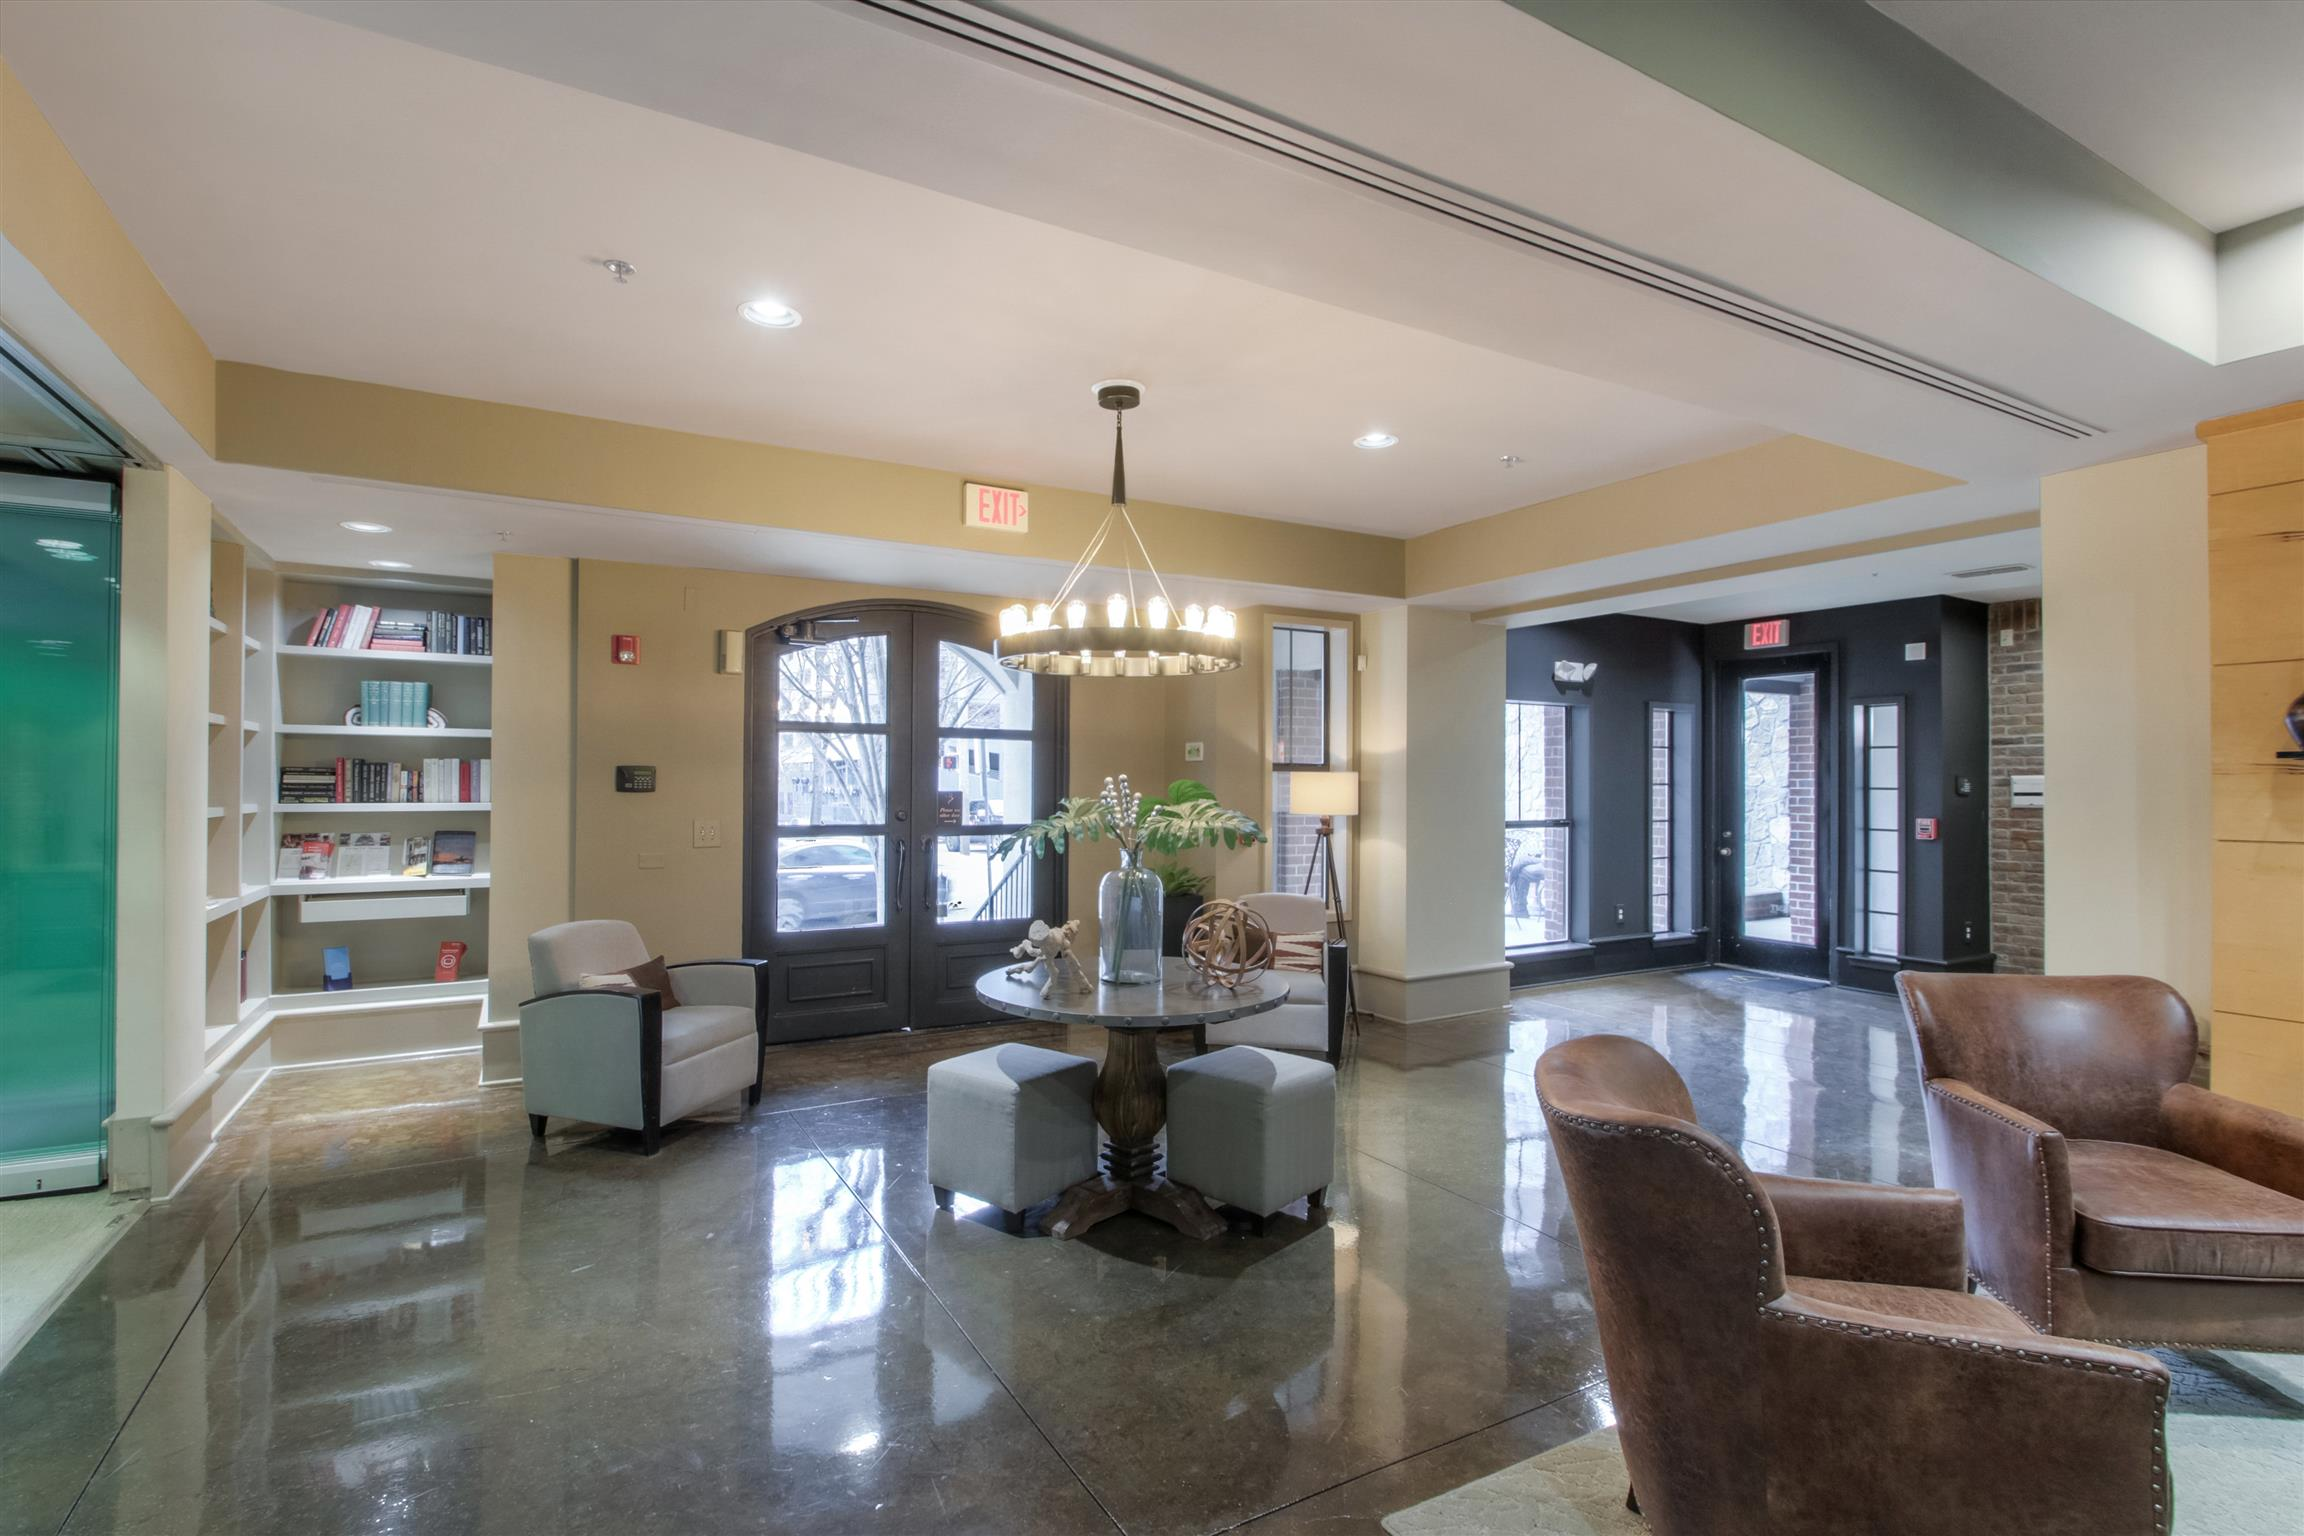 1803 Broadway Unit 424, Nashville - Midtown in Davidson County County, TN 37203 Home for Sale